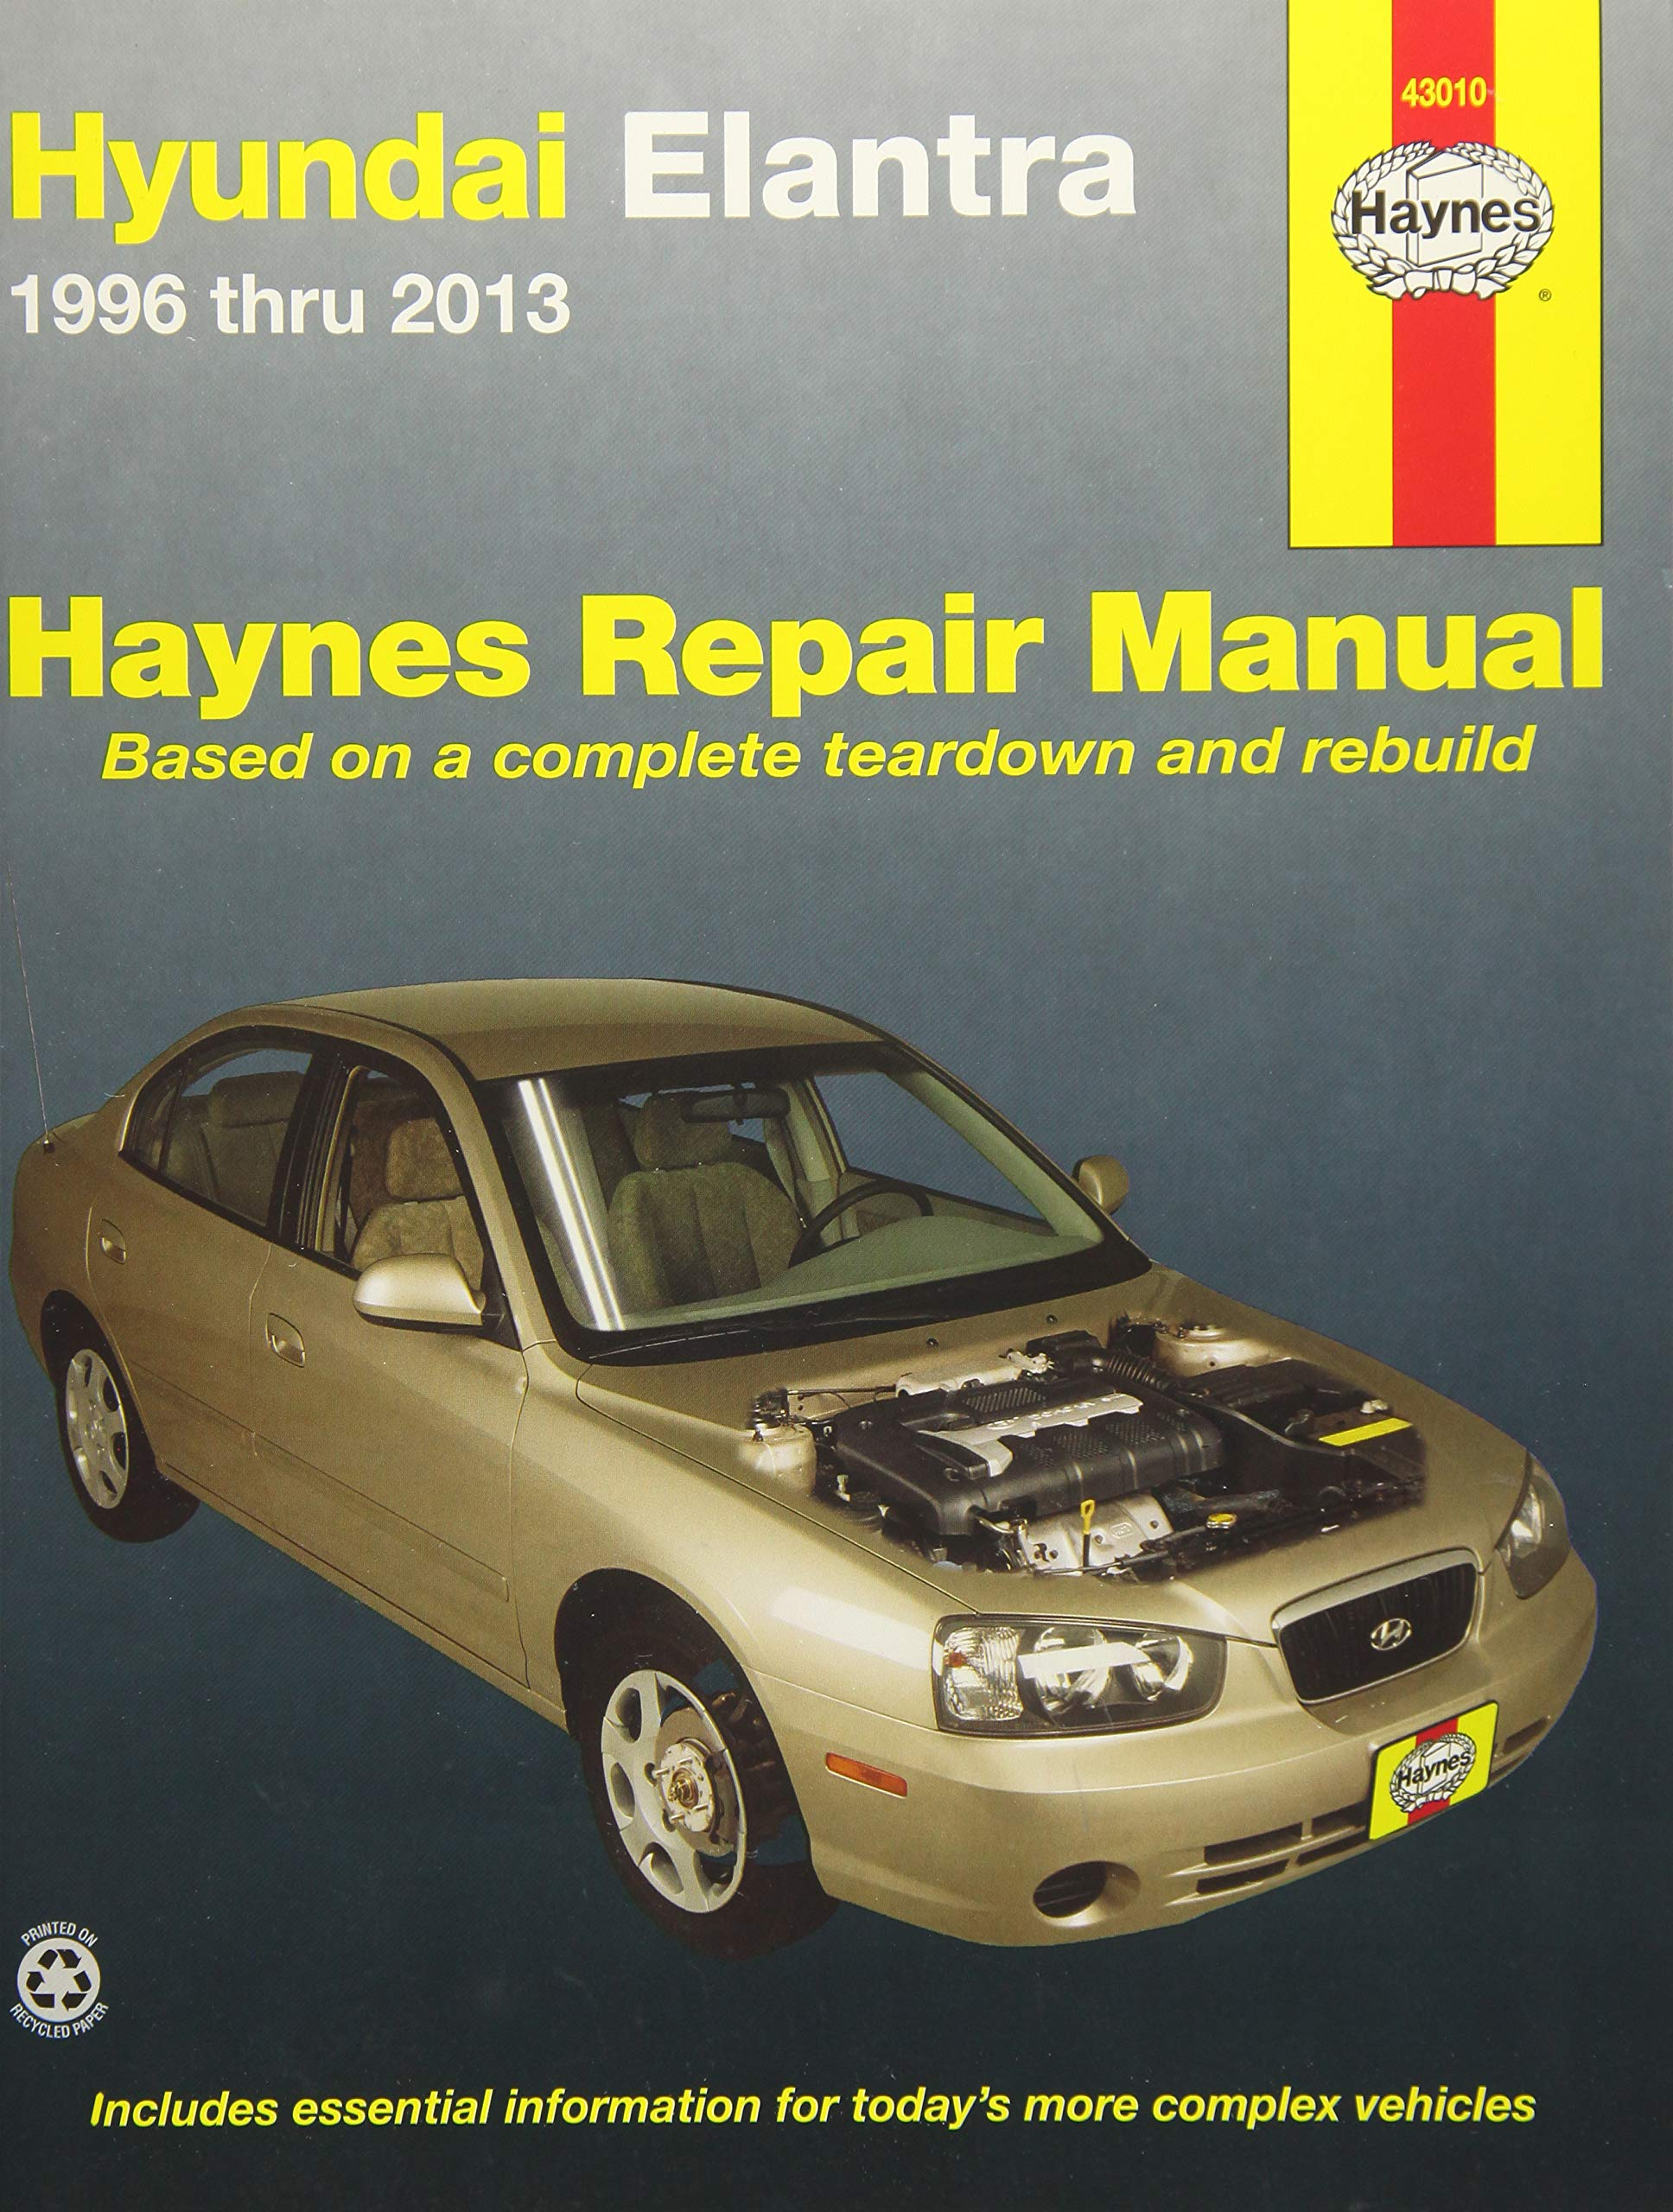 Hyundai Elantra 1996 thru 2013 (Haynes Repair Manual): Editors of Haynes  Manuals: 9781620921081: Amazon.com: Books